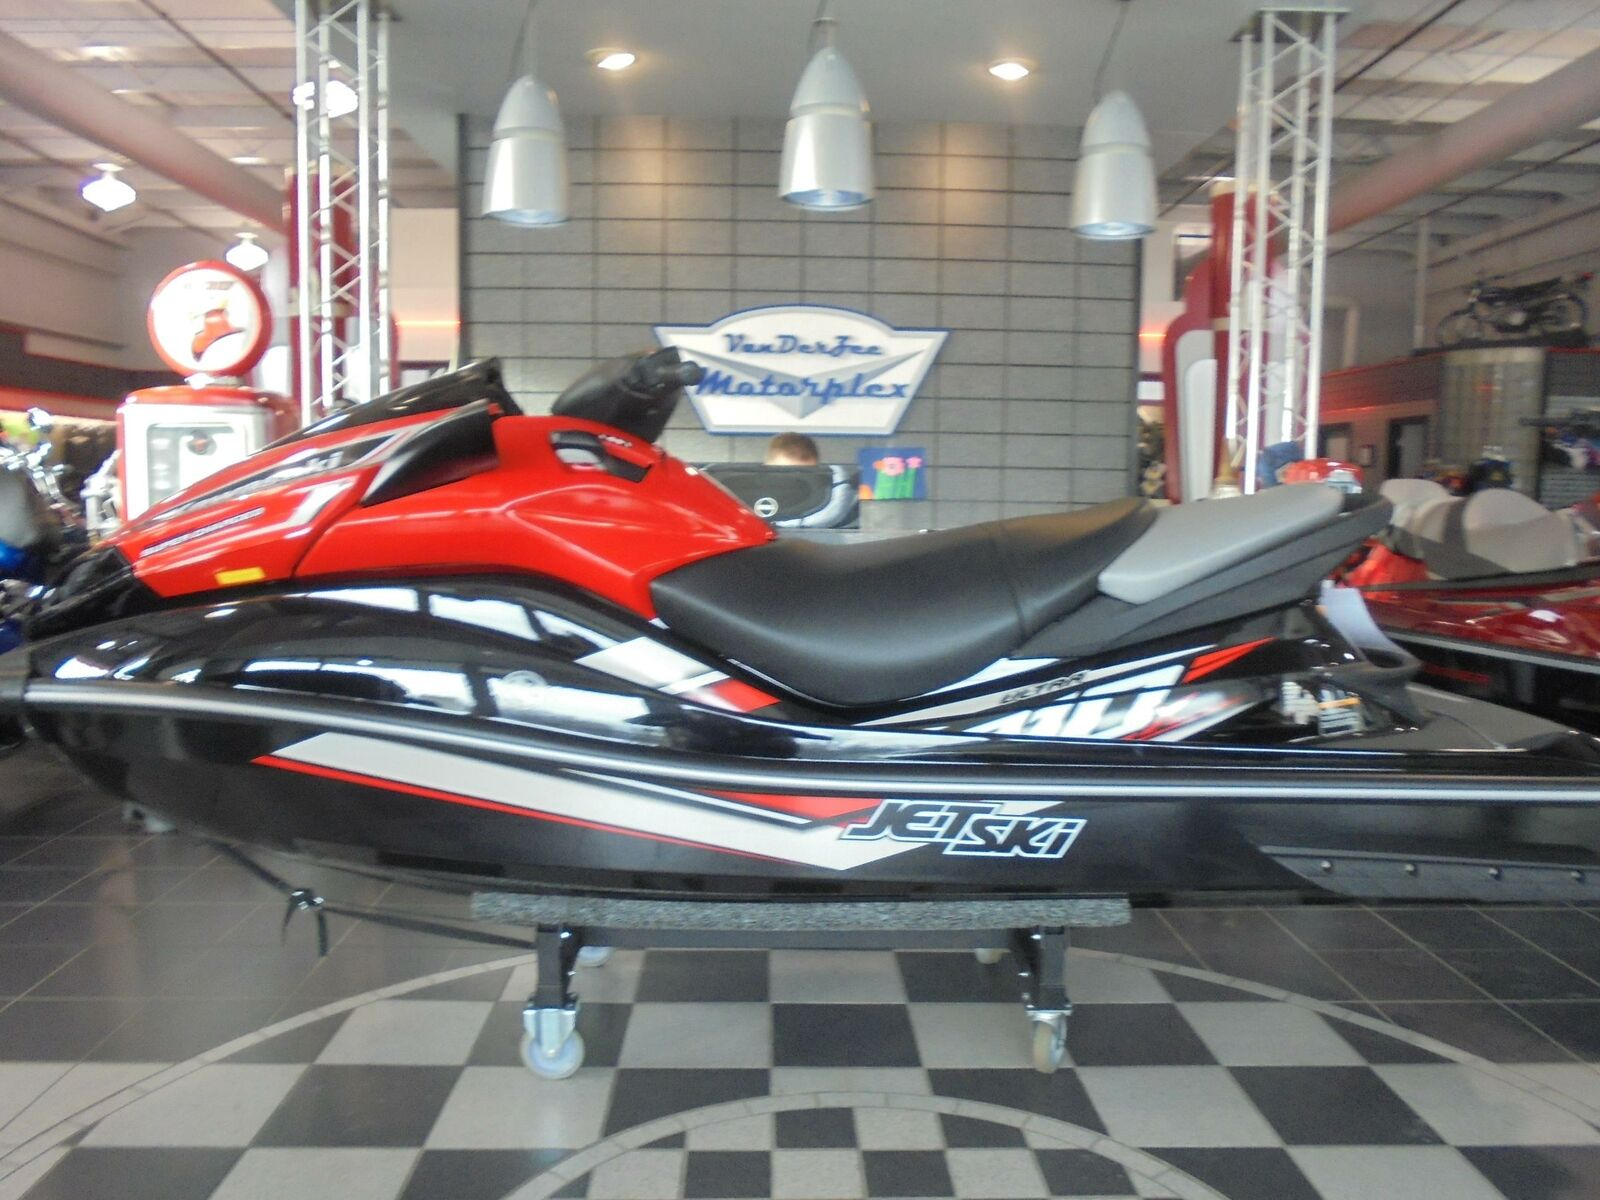 2019 Kawasaki Ultra 310 X * ONLINE BOAT SHOW SPECIAL * CALL TODAY and SAVE BIG!